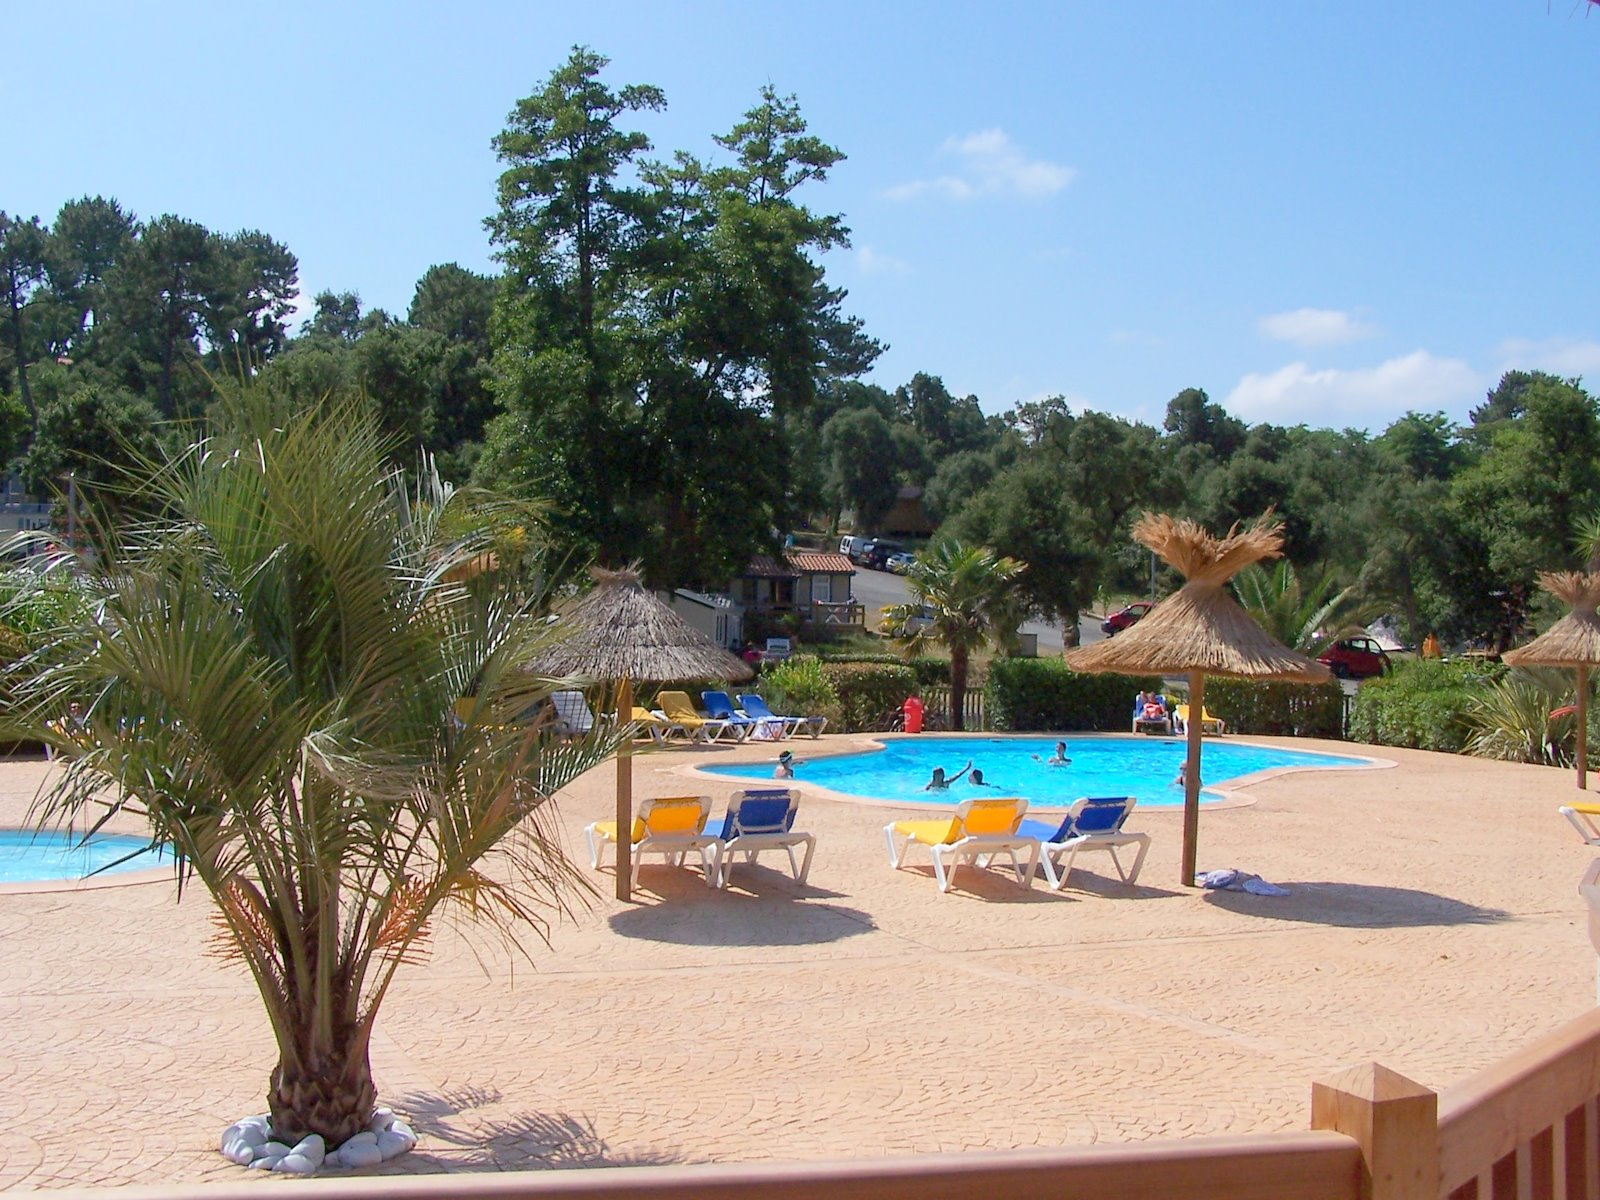 Camping 5* du Lac